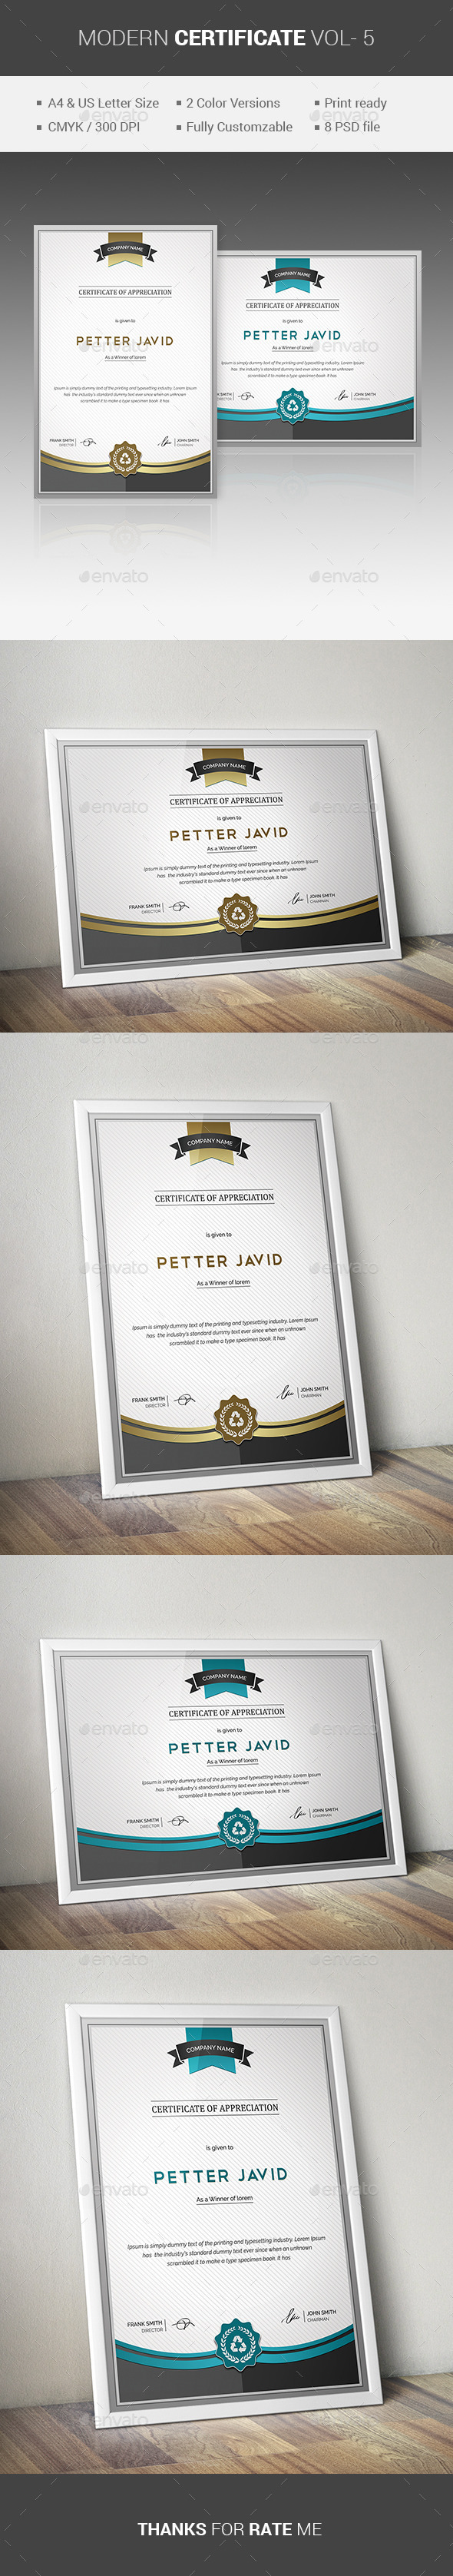 GraphicRiver MODERN Certificate VOL- 5 11136971